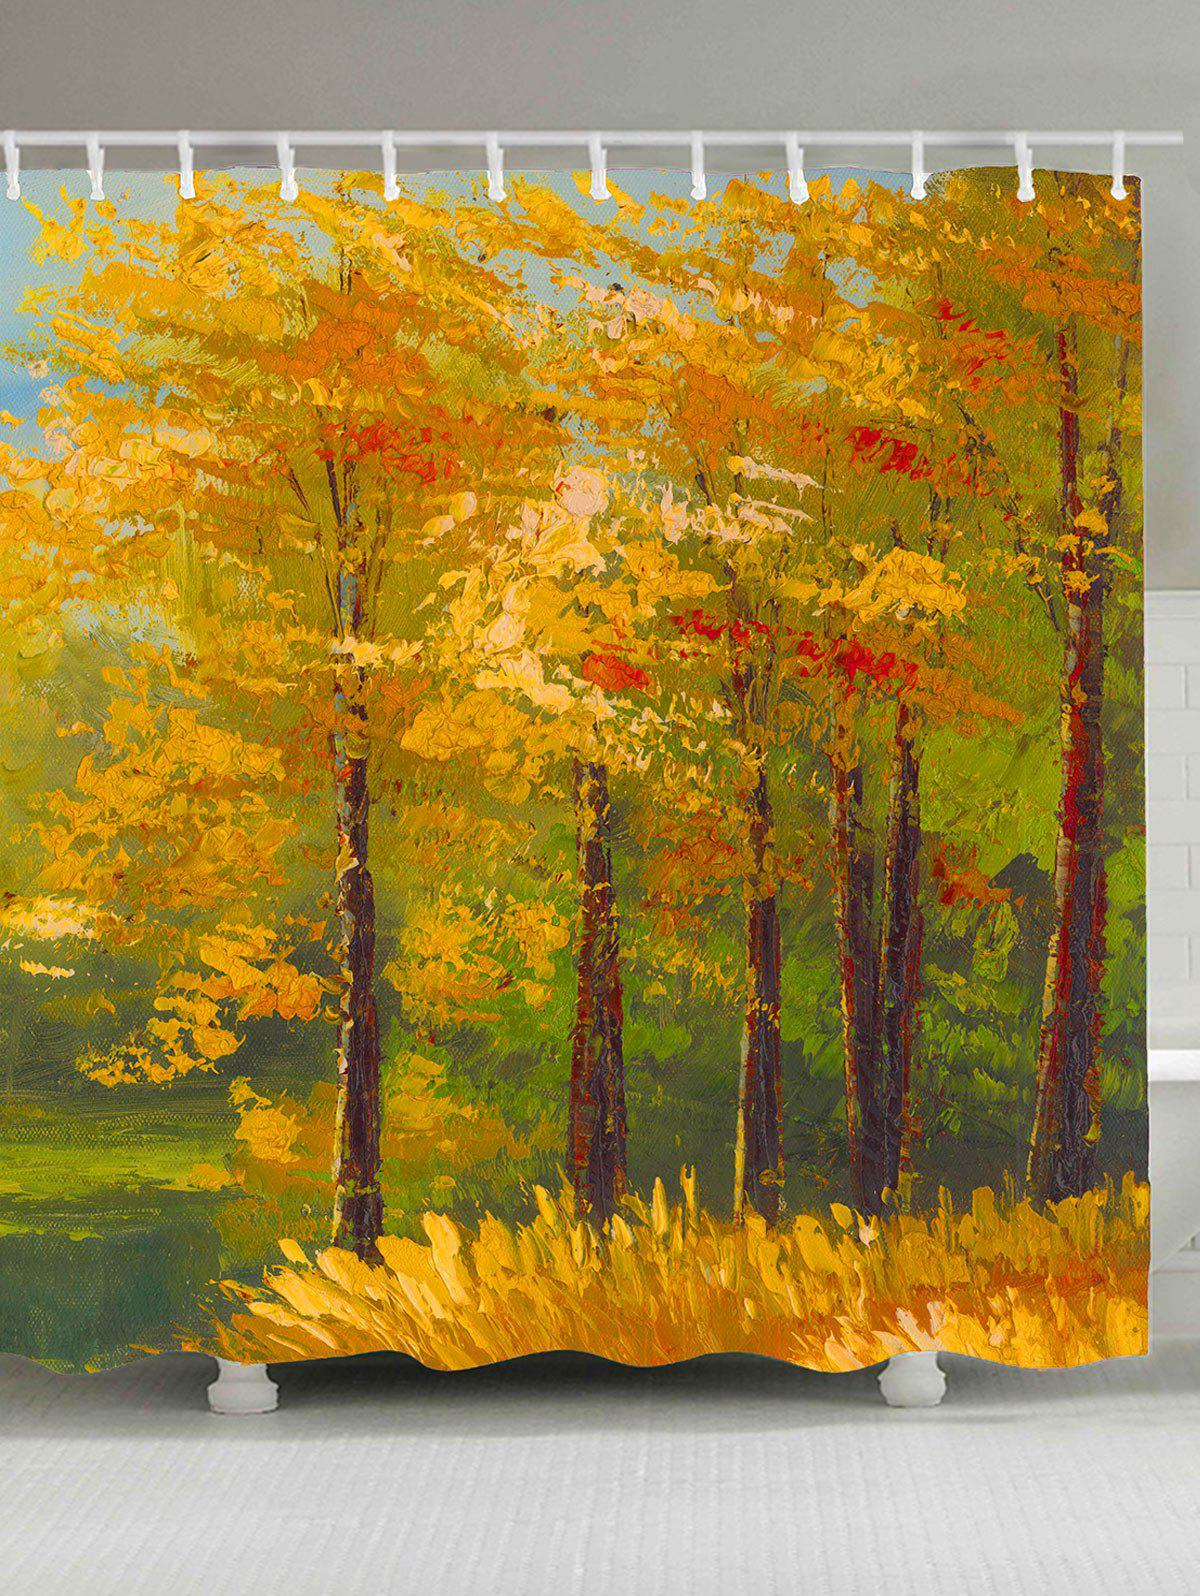 Waterproof Oil Painting Maple Trees Shower Curtain - GINGER W71 INCH * L71 INCH